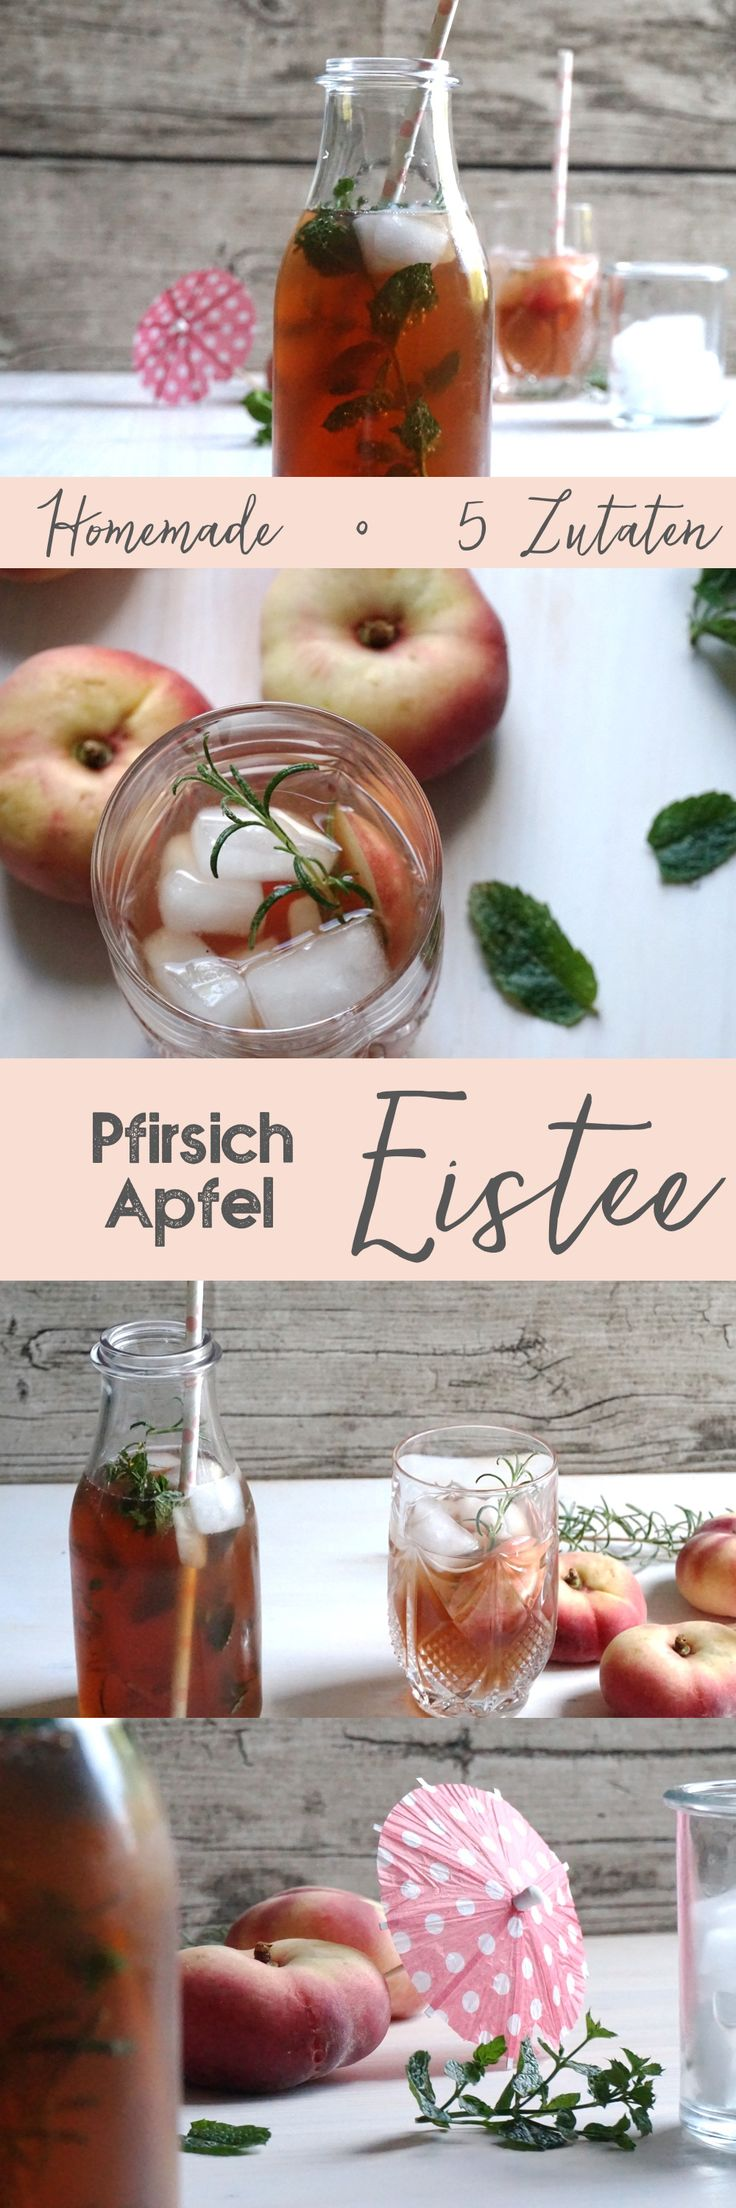 Best 25+ Apples ideas on Pinterest | Apple, Easy thanksgiving ...